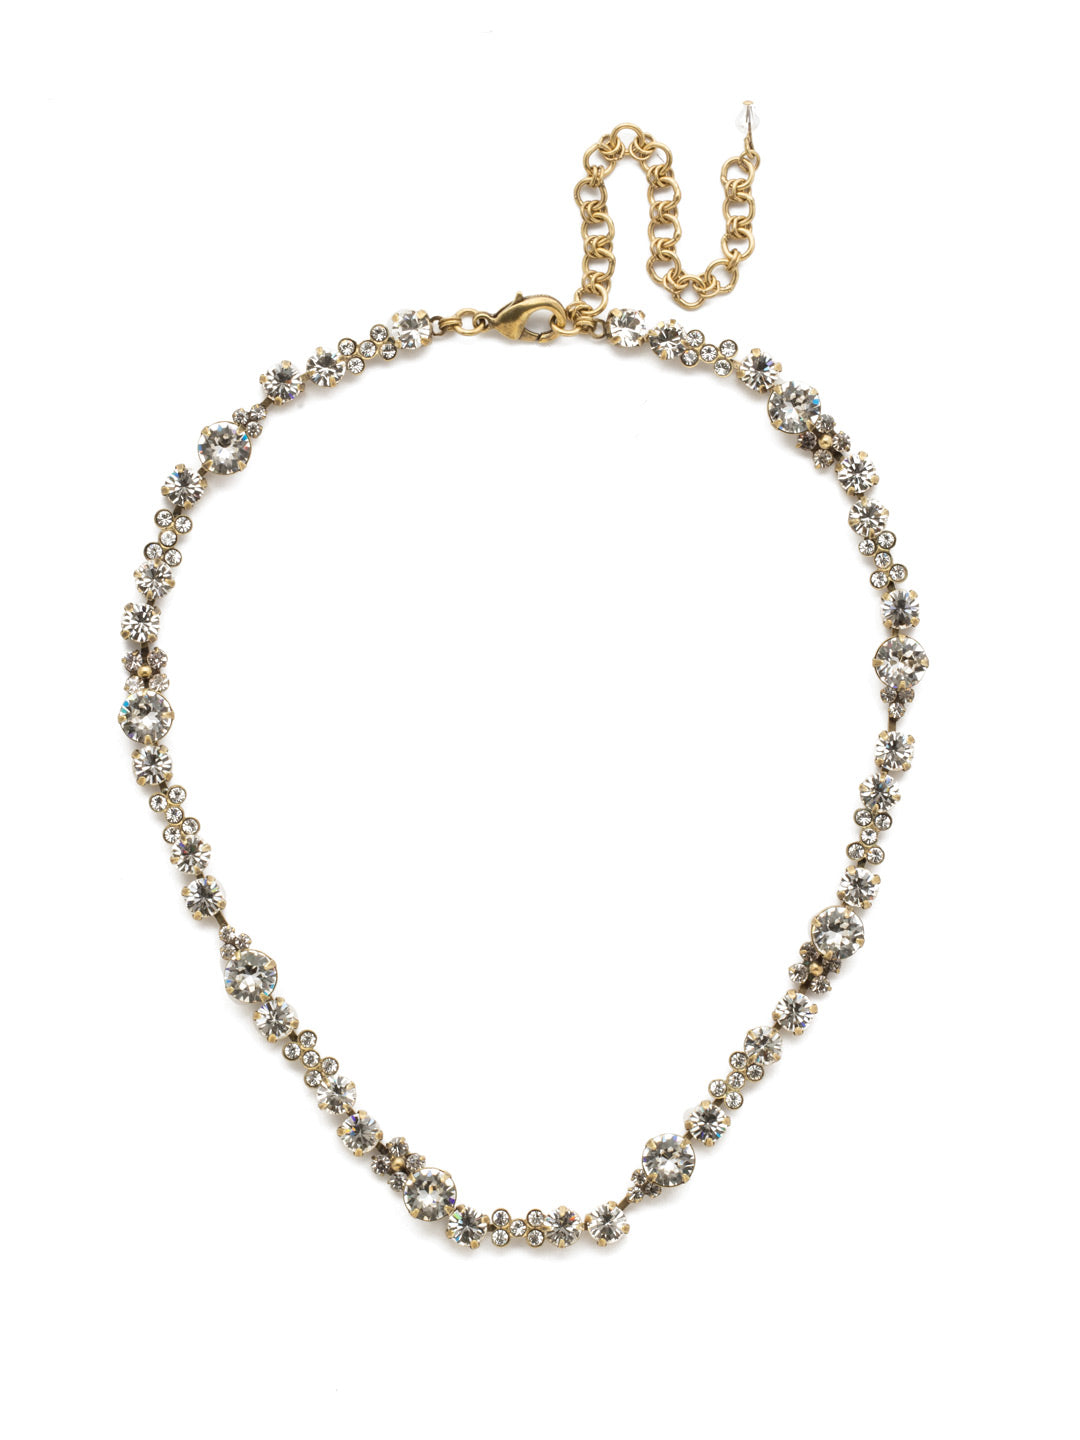 In Bloom Line Necklace - NDK10AGCRY